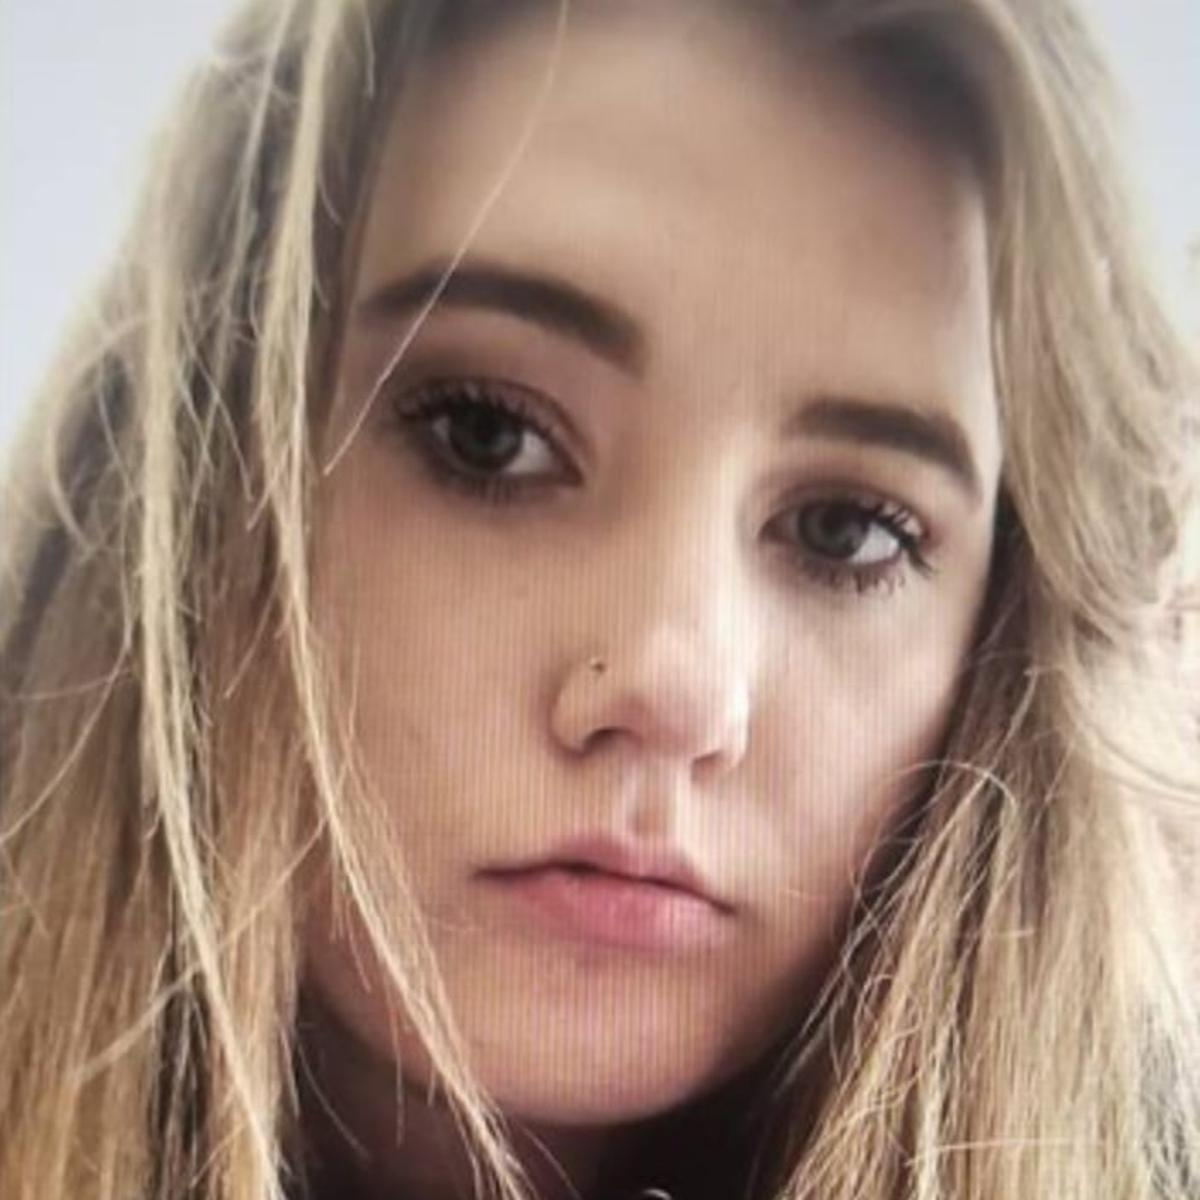 CHUBBUCK GIRL LOCATED AFTER BEING MISSING OVER 10 DAYS   Local